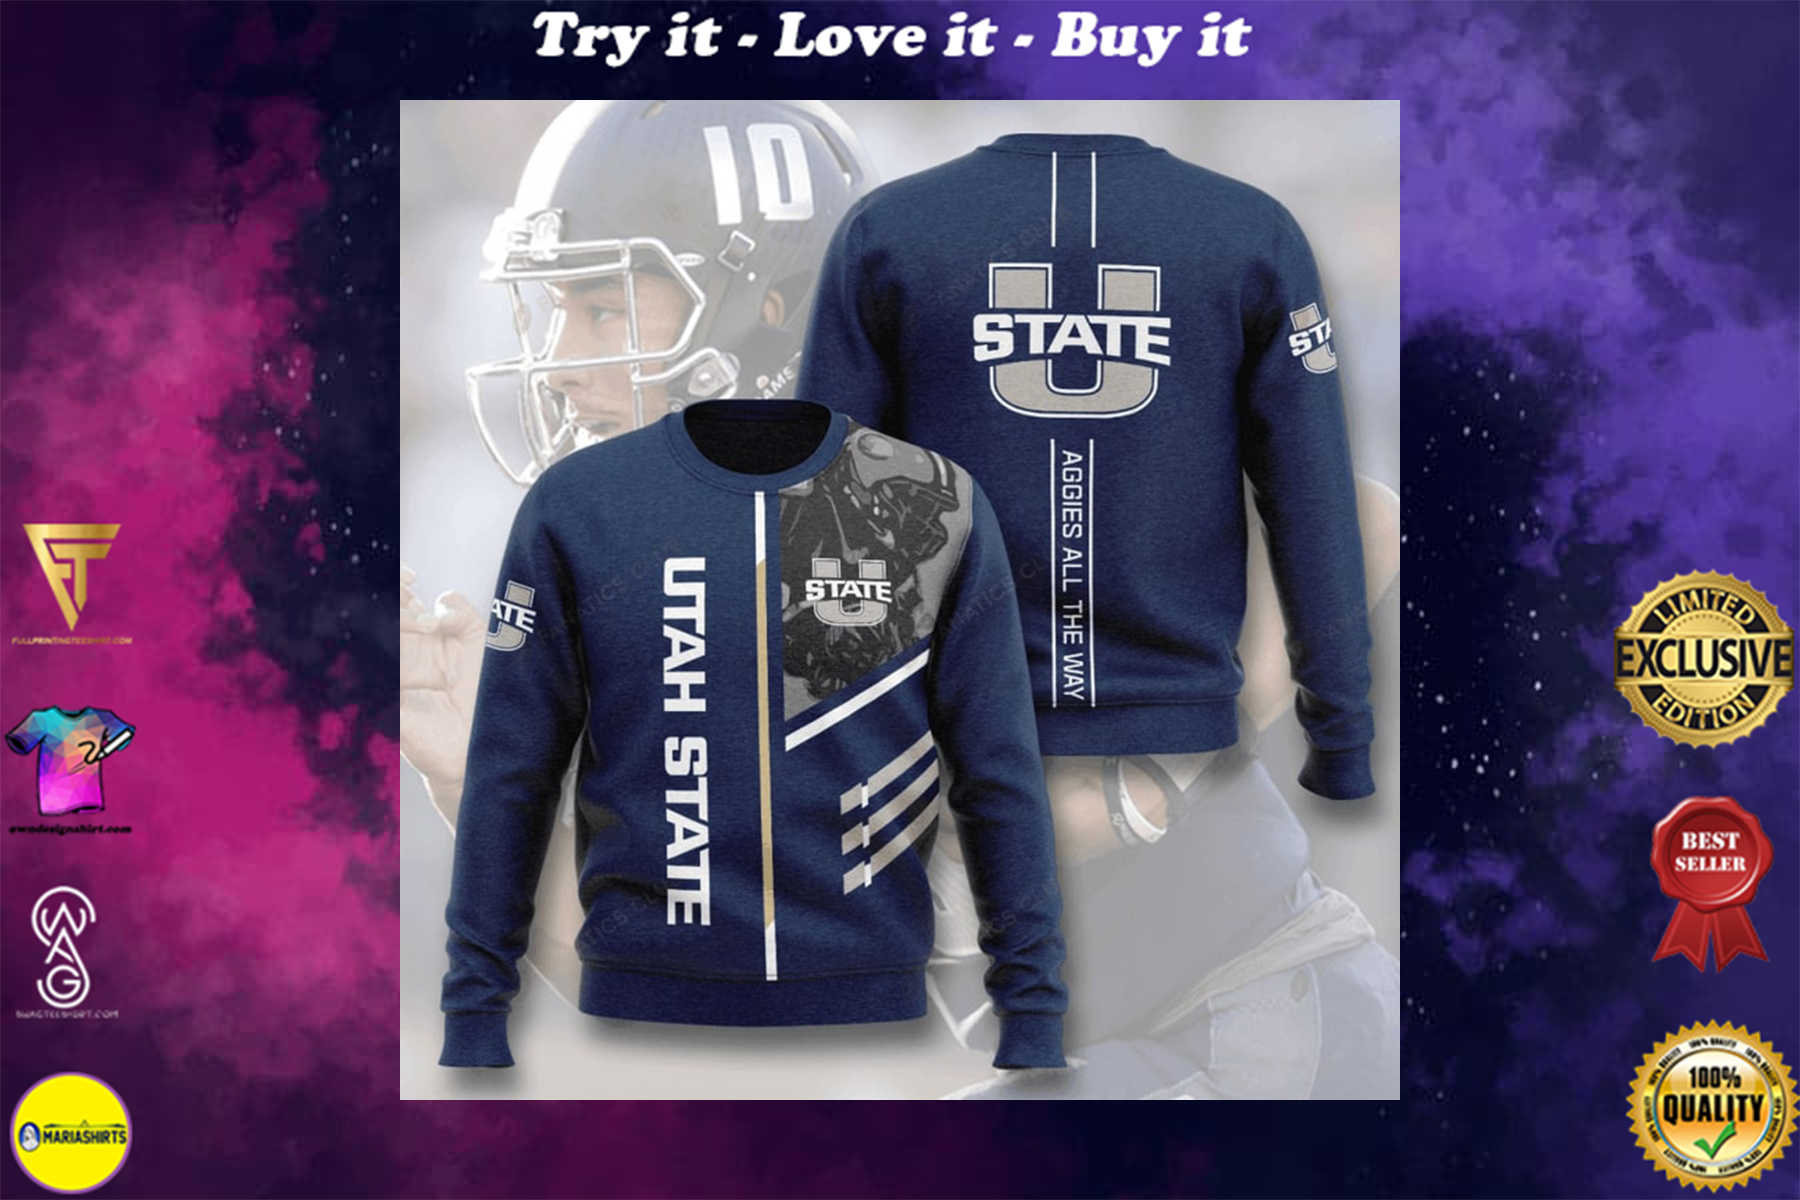 [special edition] utah state aggies football aggies all the way full printing ugly sweater - maria